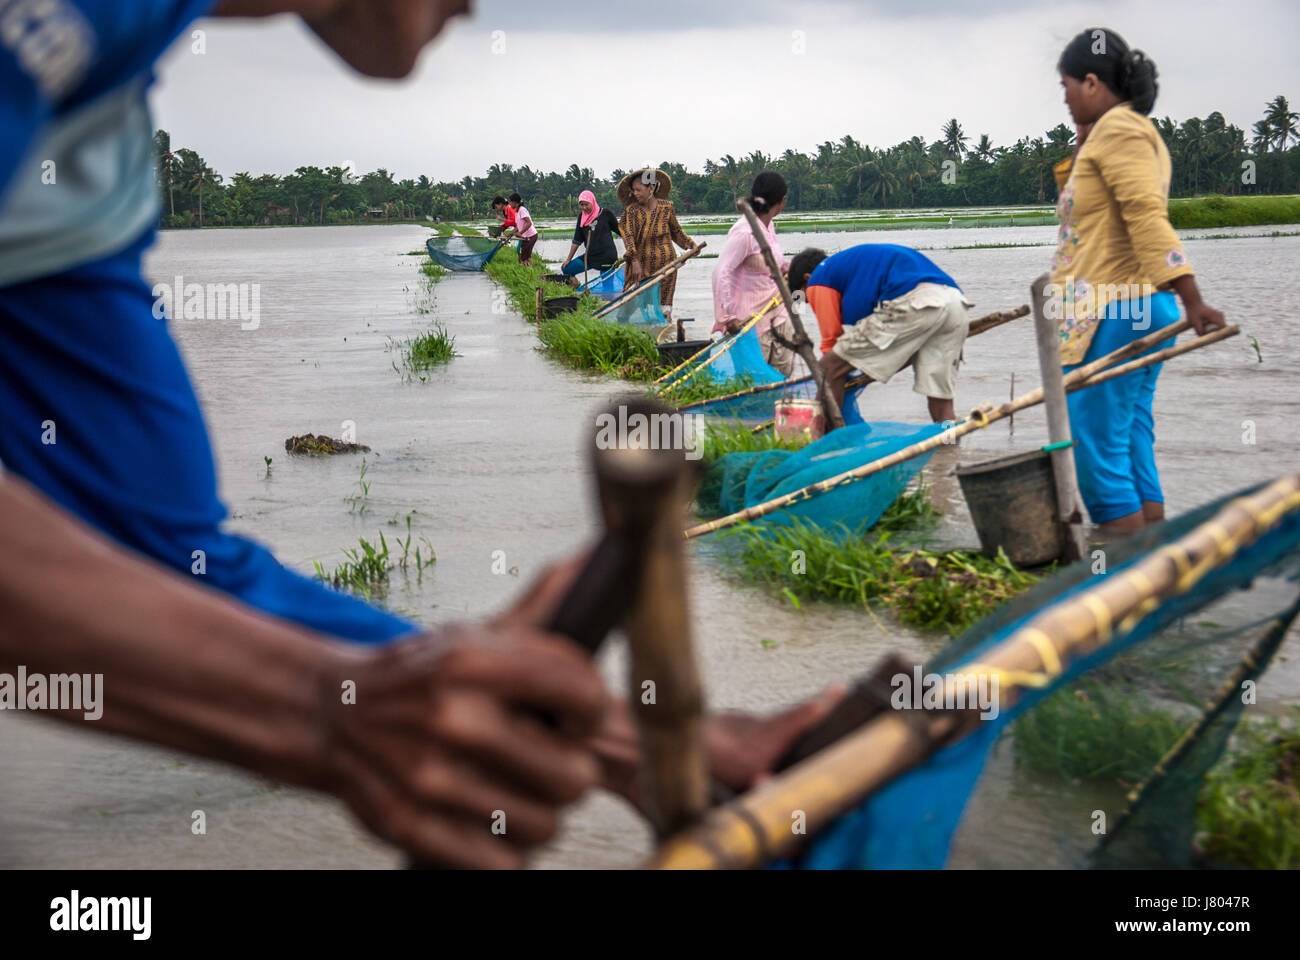 Farmers catch fishes using fish nets on flooded rice field during monsoon in West Java, Indonesia. © Reynold - Stock Image